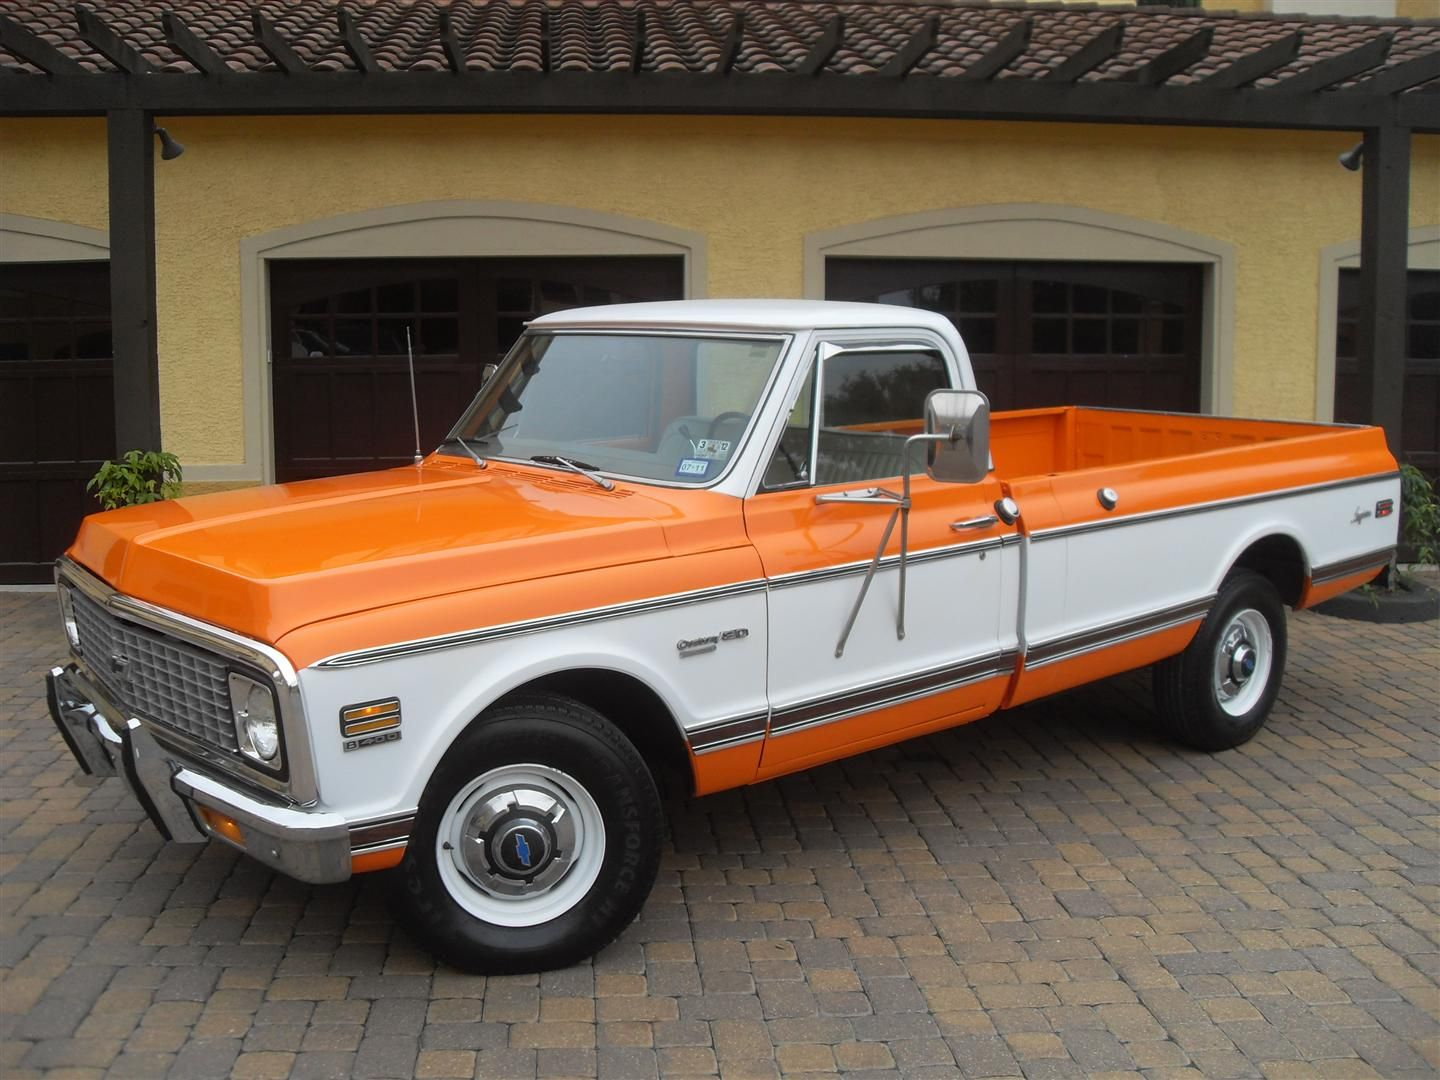 1970 Chevy dual tank truck | Cool old trucks | Pinterest | Cars, GMC ...